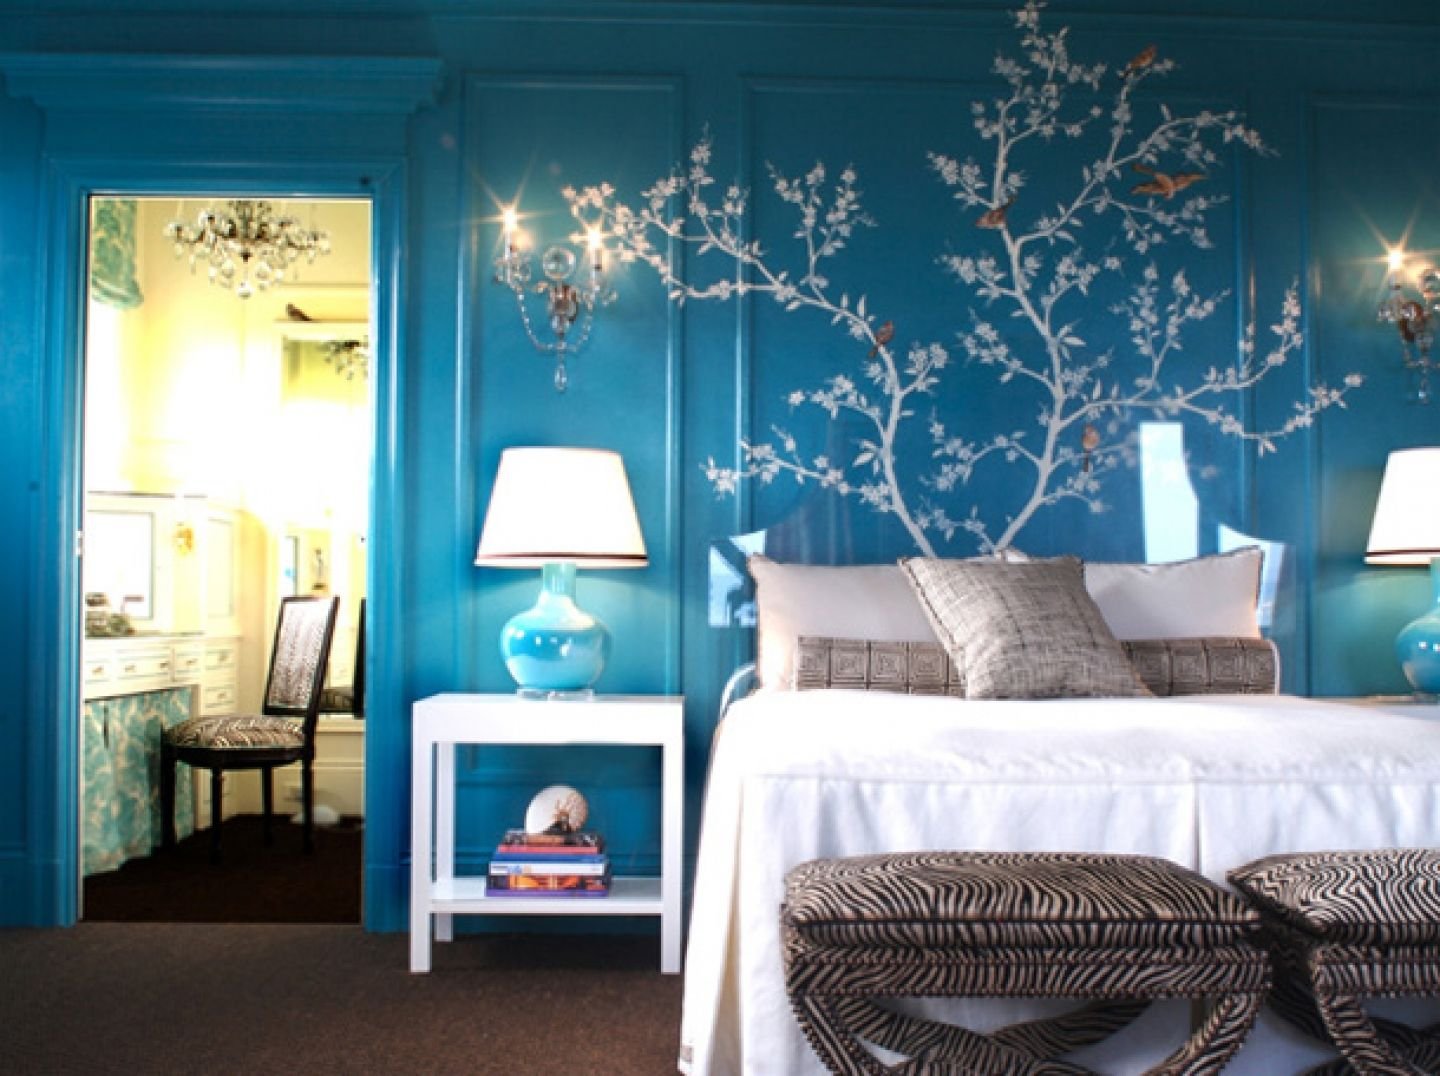 bedroom designs blue teal blue bedroom design digihome teal blue bedroom design digihome - Blue And White Bedroom Designs